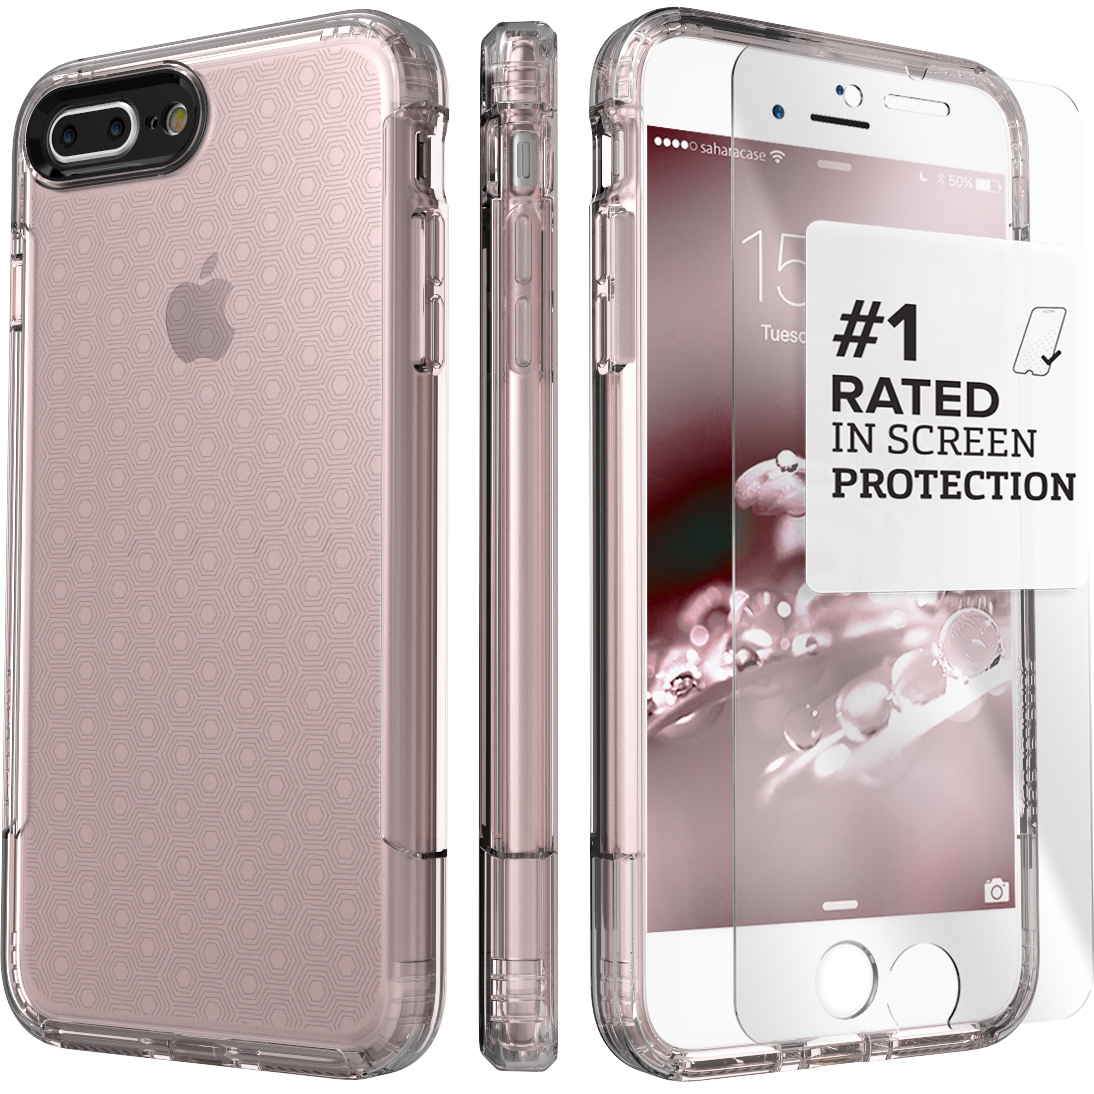 SaharaCase iPhone 8 Plus and 7 Plus Inspire Case, Protective Kit Bundle with ZeroDamage Tempered Glass Screen Protector ? Rose Gold Clear